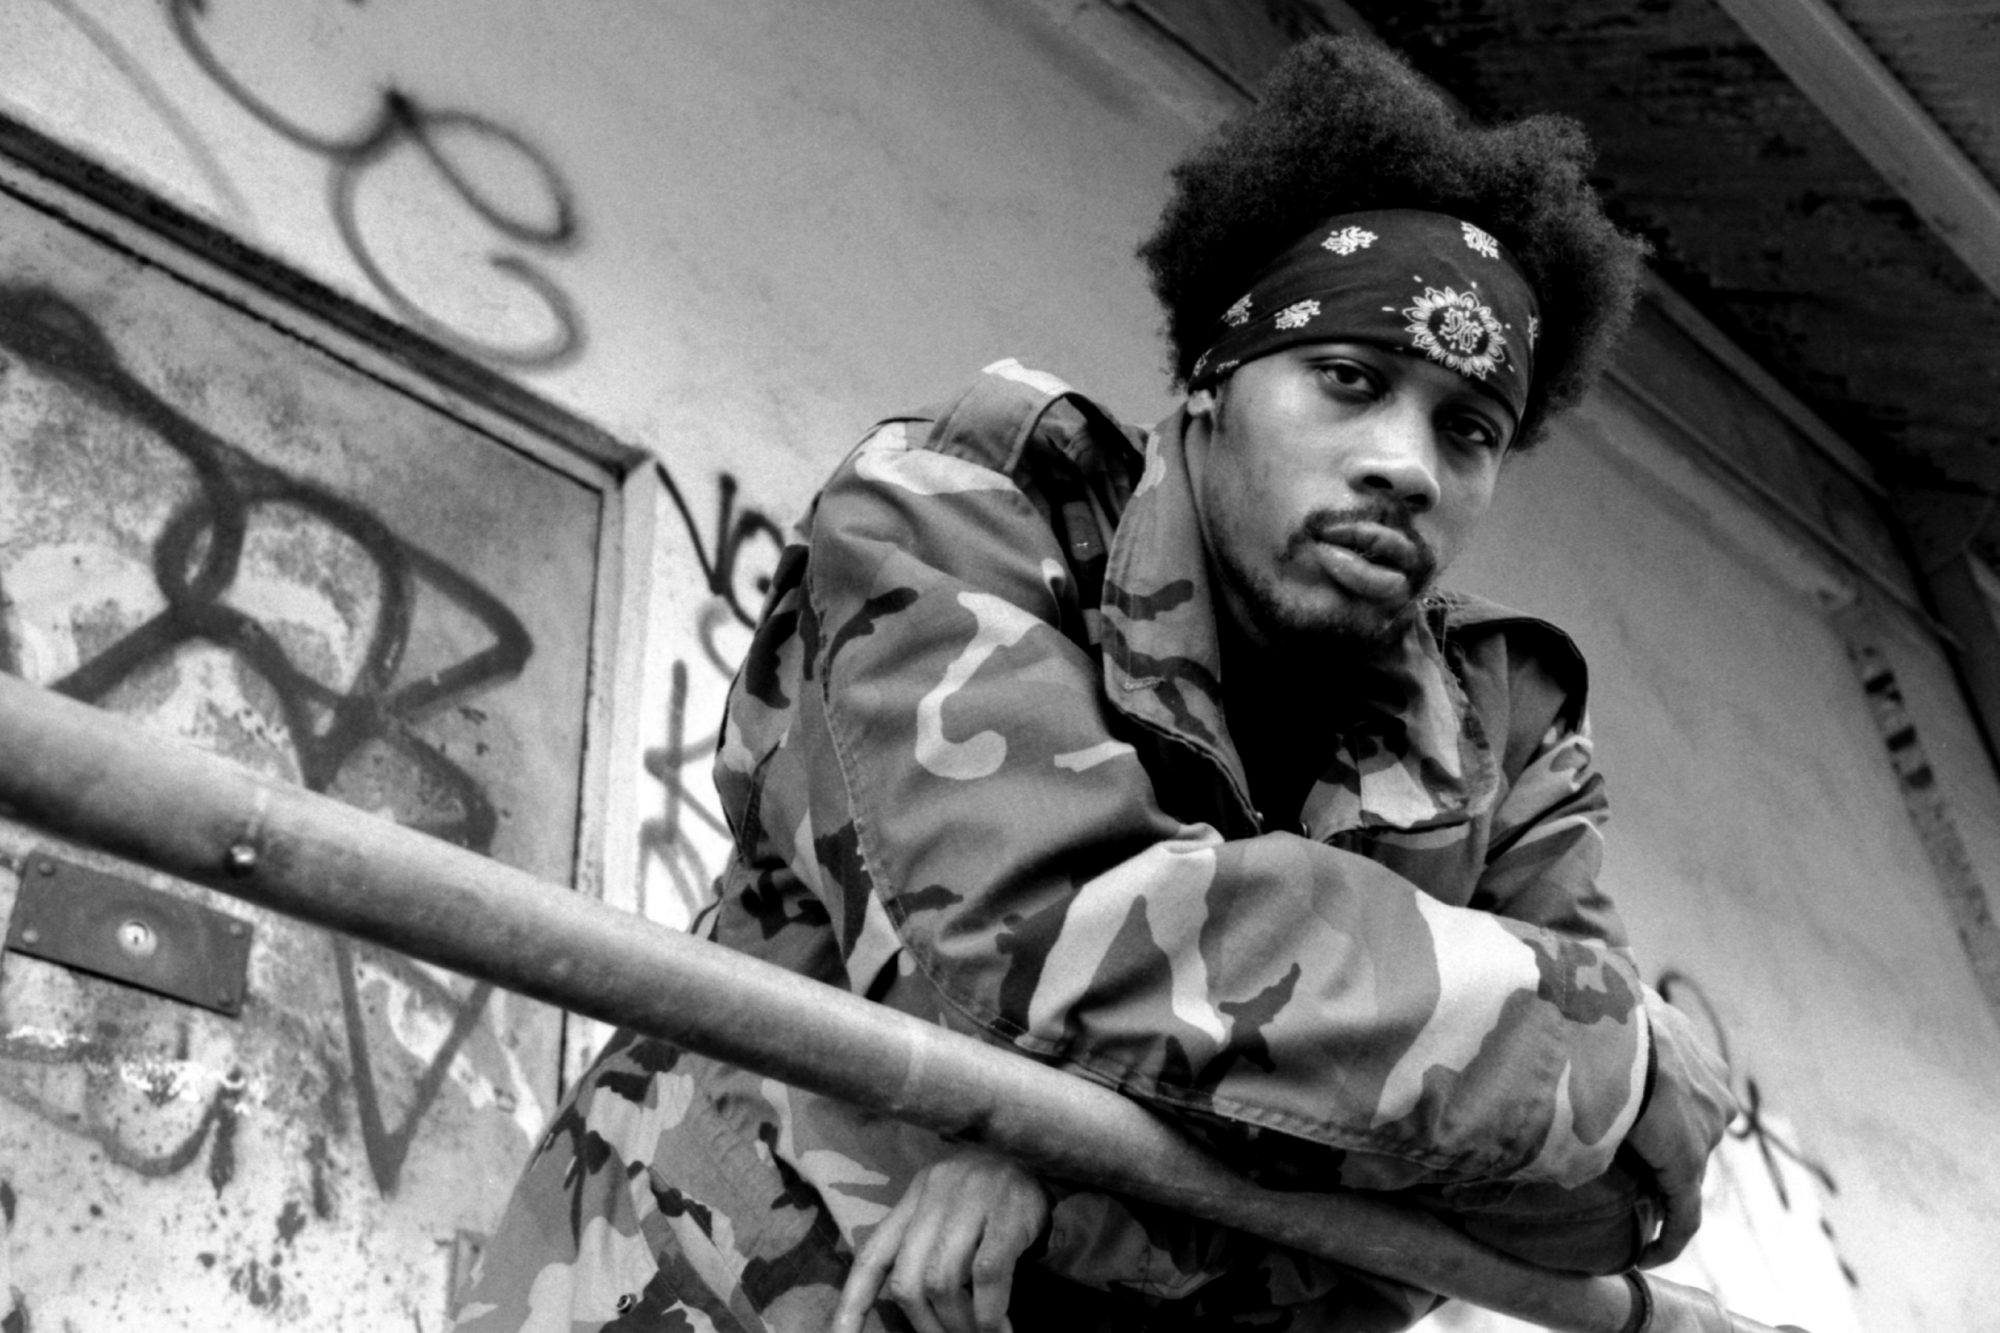 UNITED STATES - CIRCA 1995: Photo of RZA, RZA of Wu Tang Clan/Gravediggaz in NYC 1995 Photo by Michael Ochs Archives/Getty Images